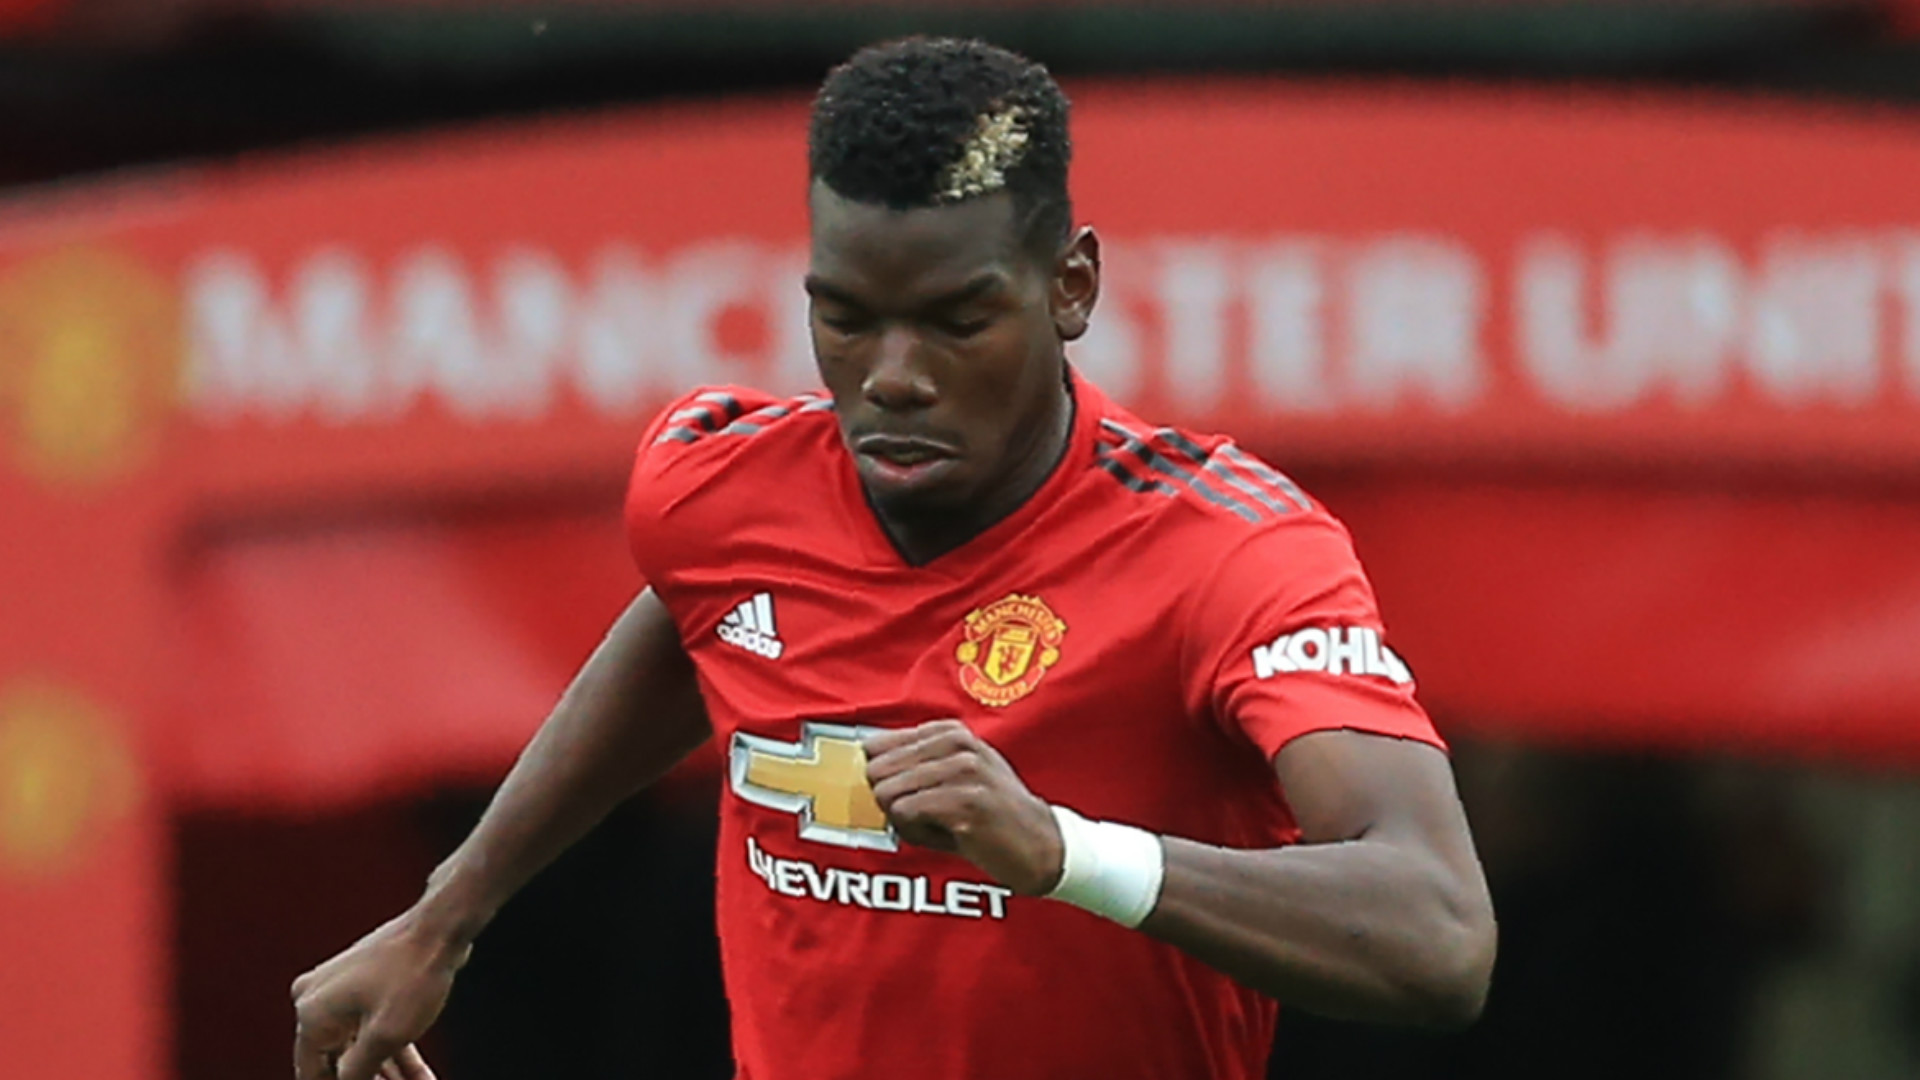 Paul Pogba ne sera plus jamais le capitaine de Man United